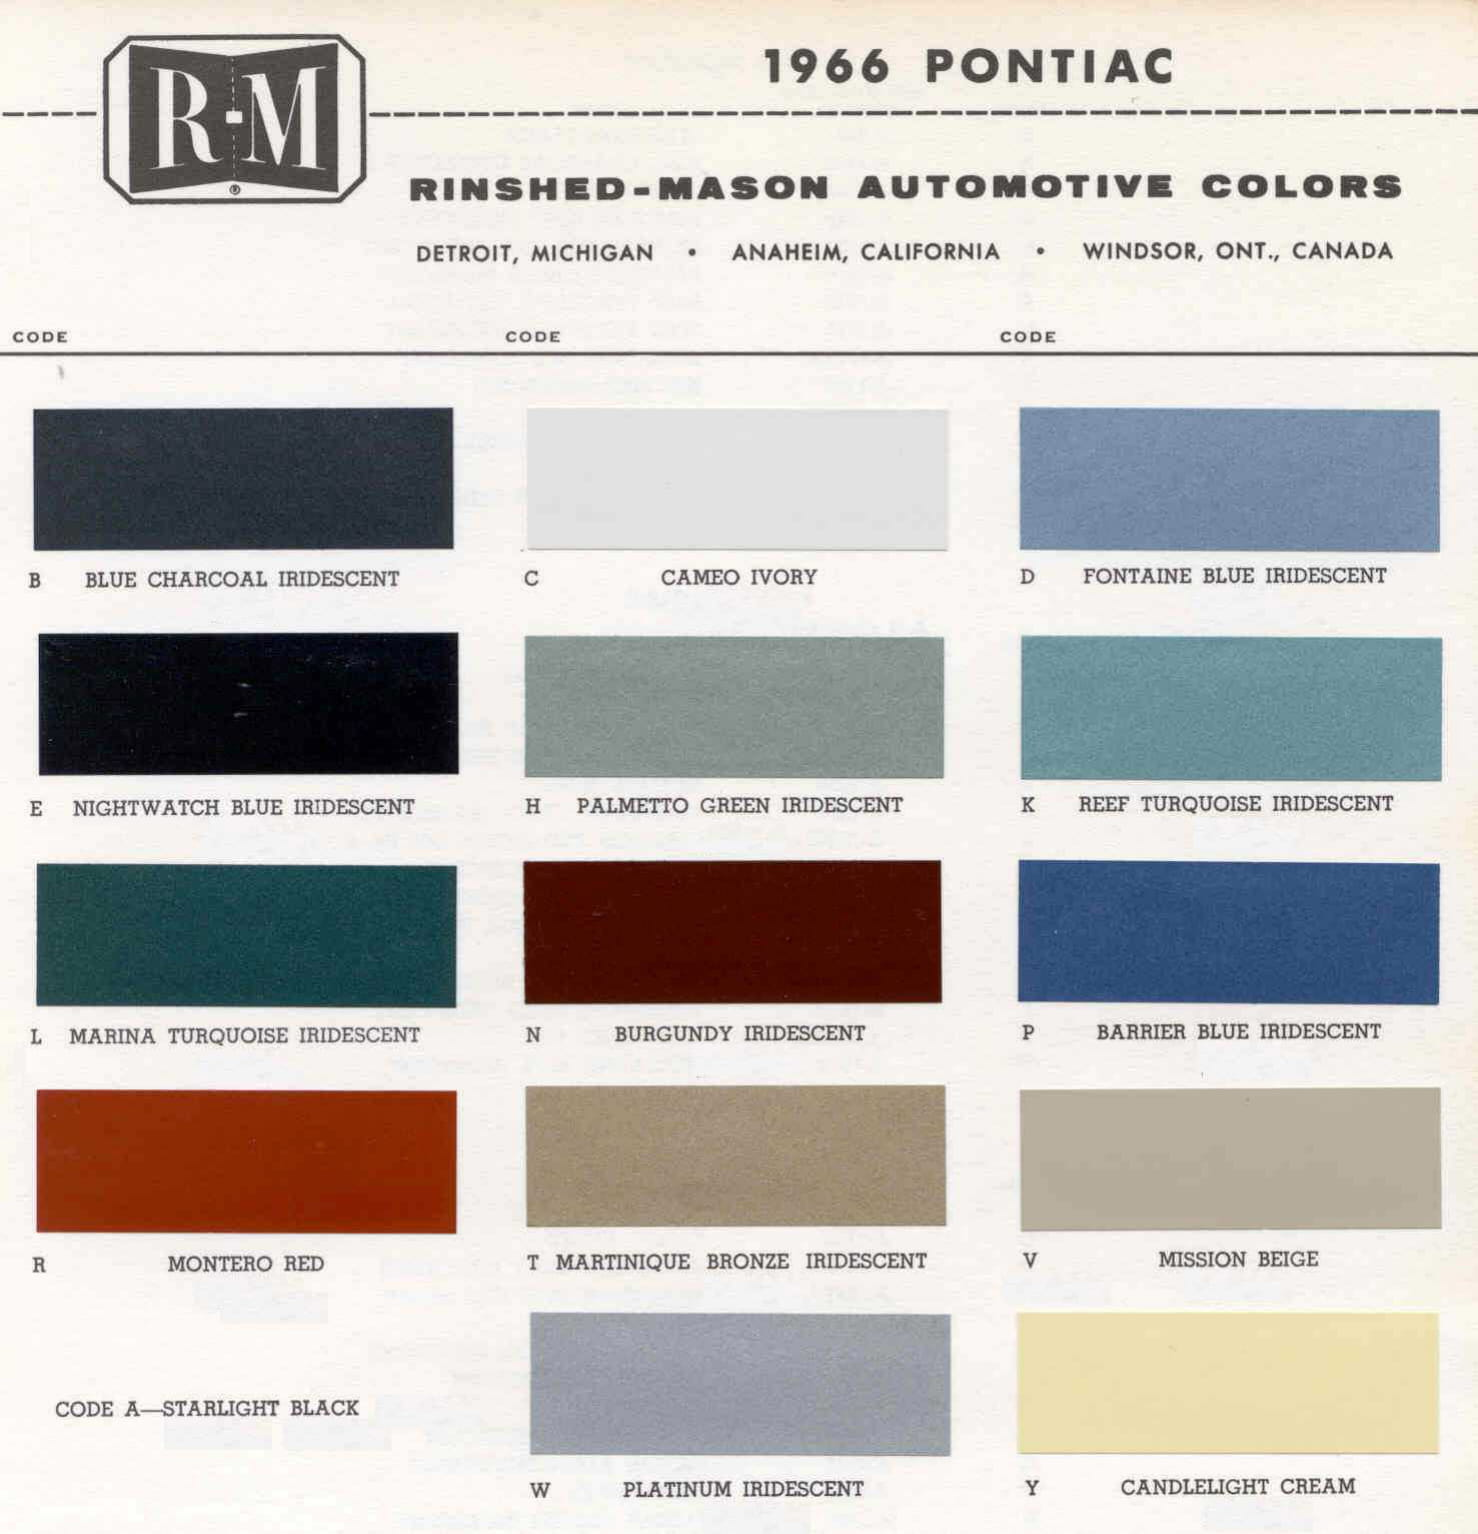 Color Code and Paint Color Chart for Pontiac in 1966